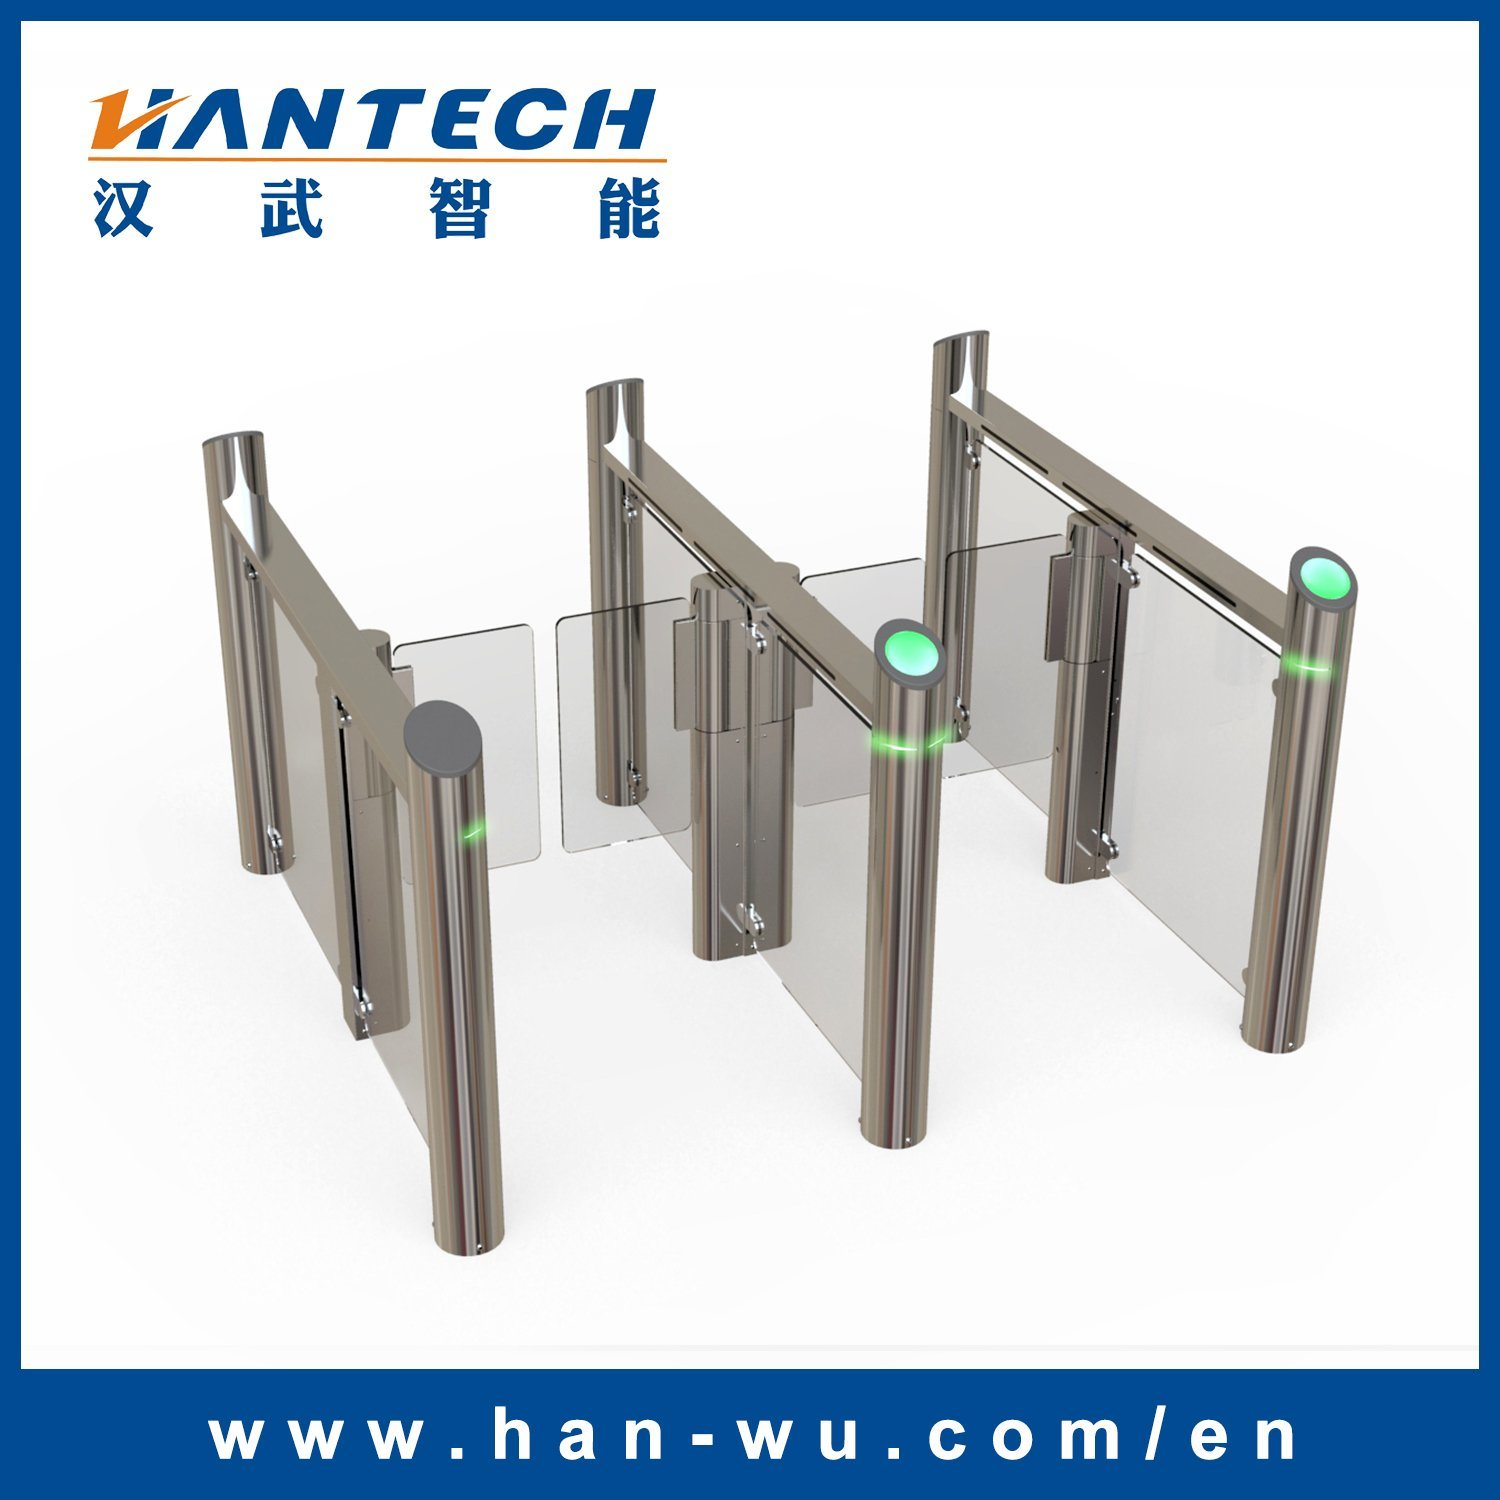 IC/ID Card Reader System Optical Swing Gate